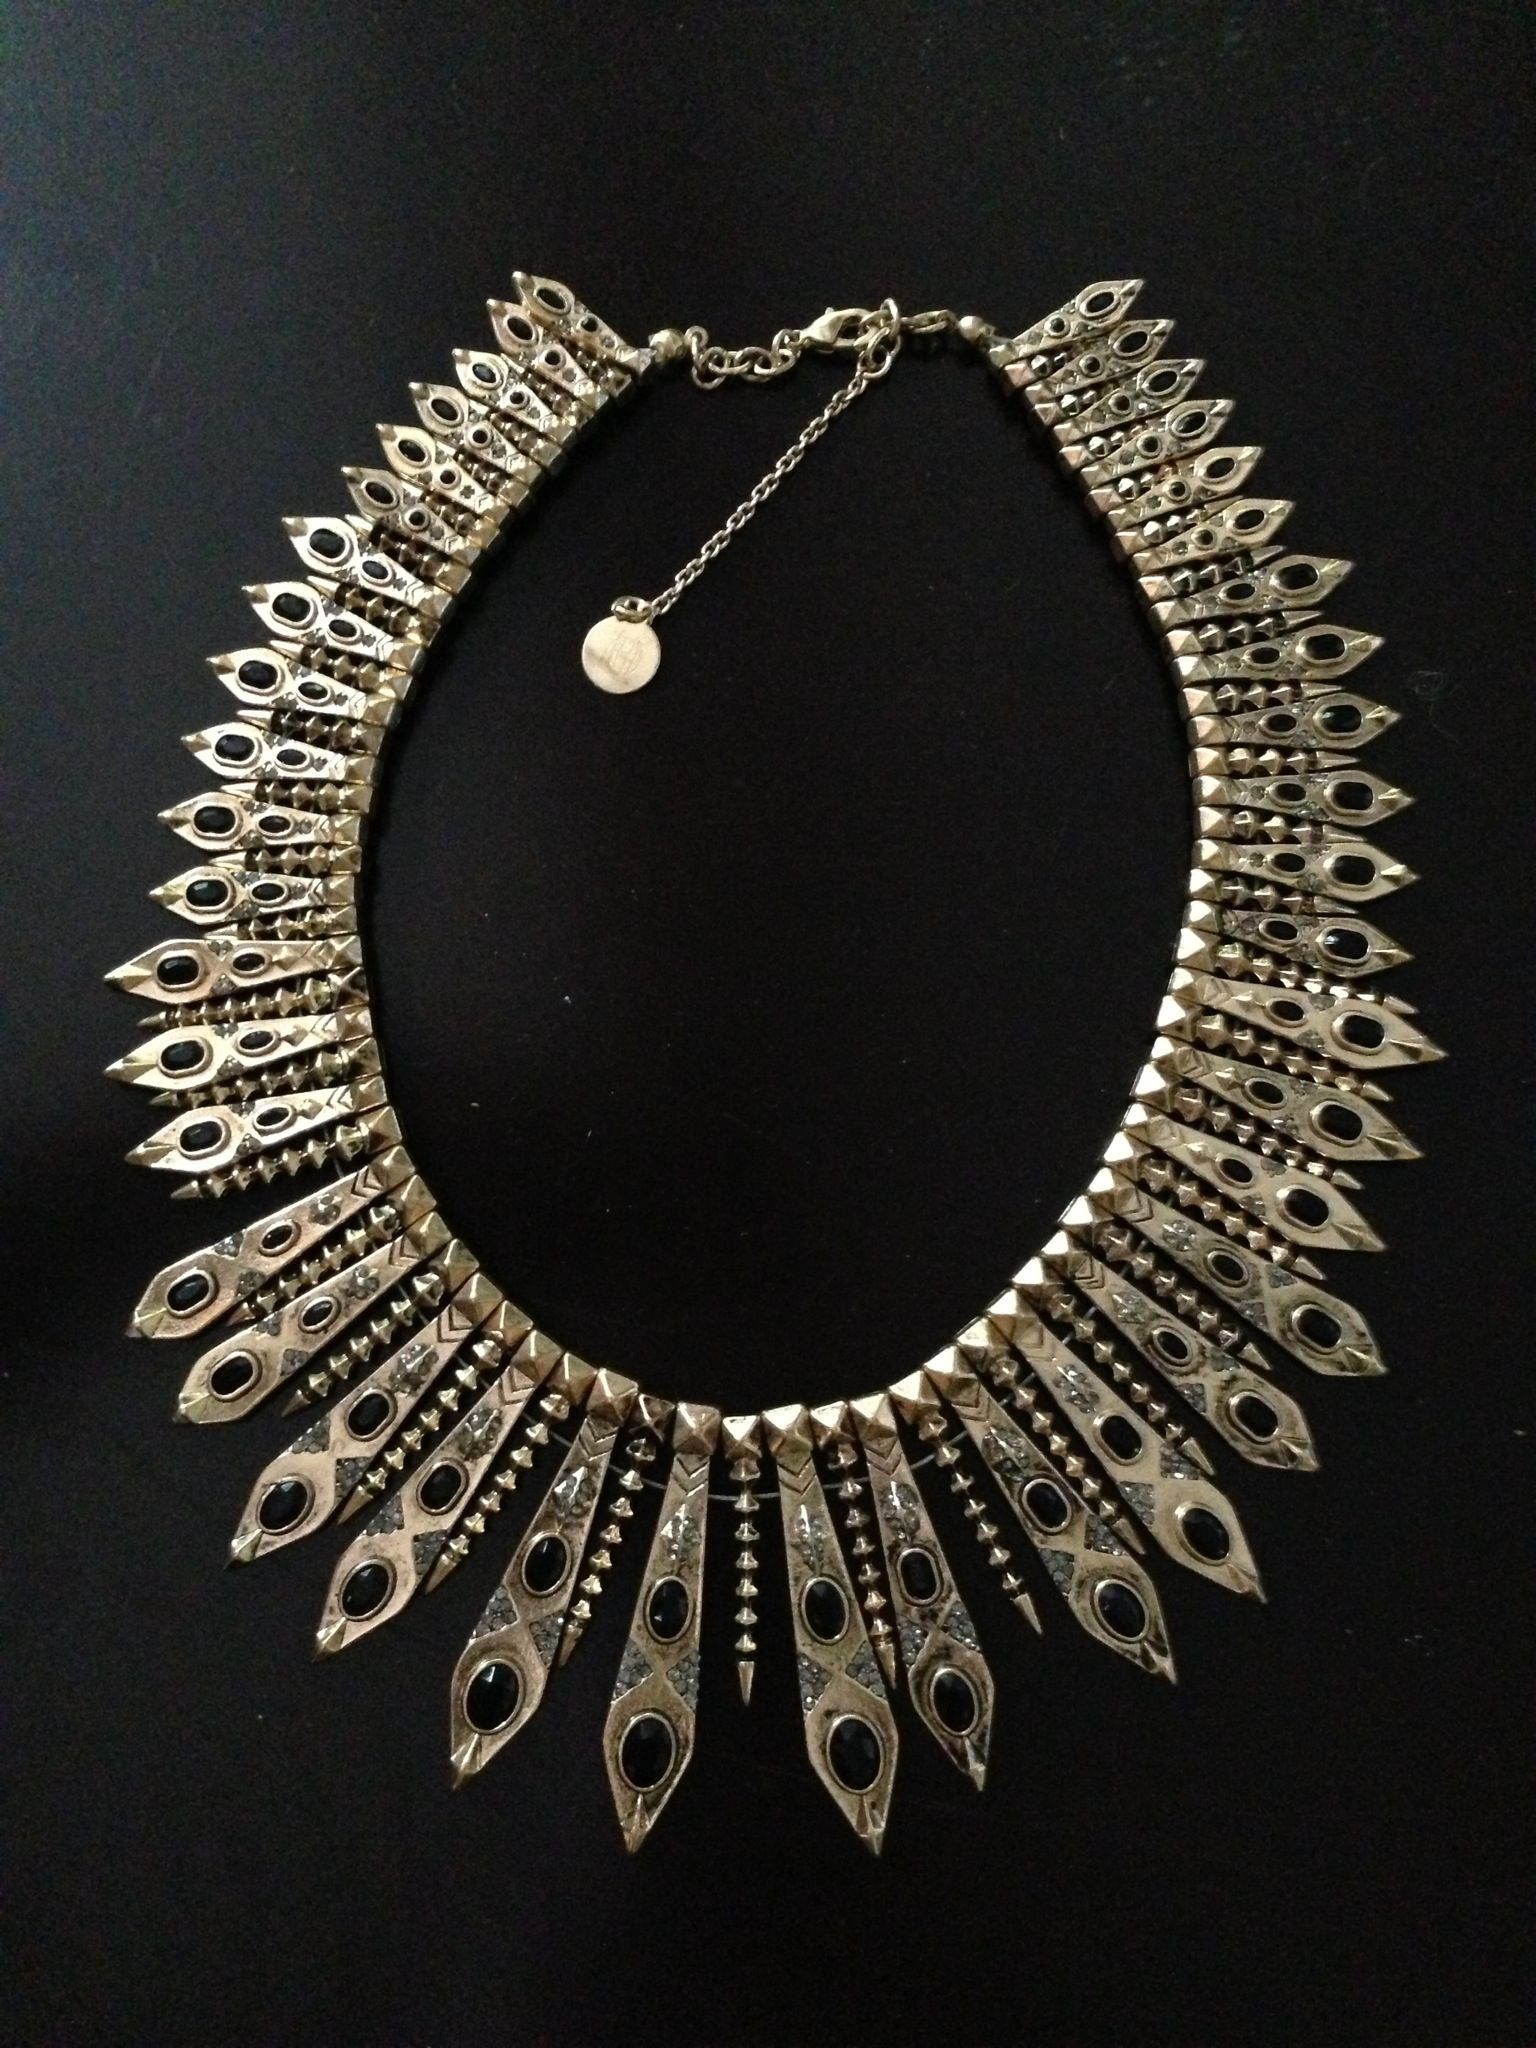 House of Harlow necklace, 215$ from want boutique! Just bought today yay